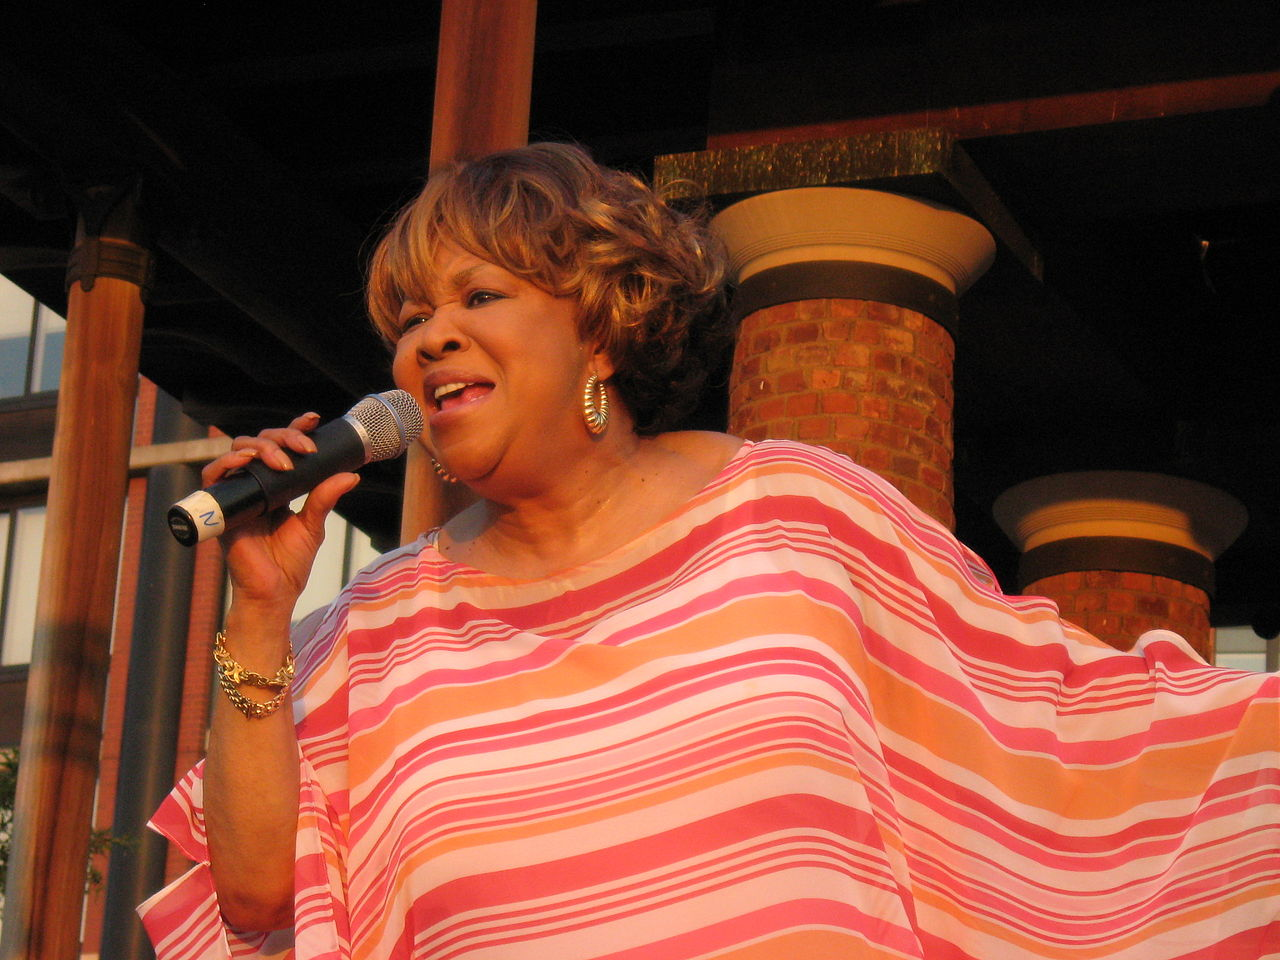 Photo: Mavis Staples on stage